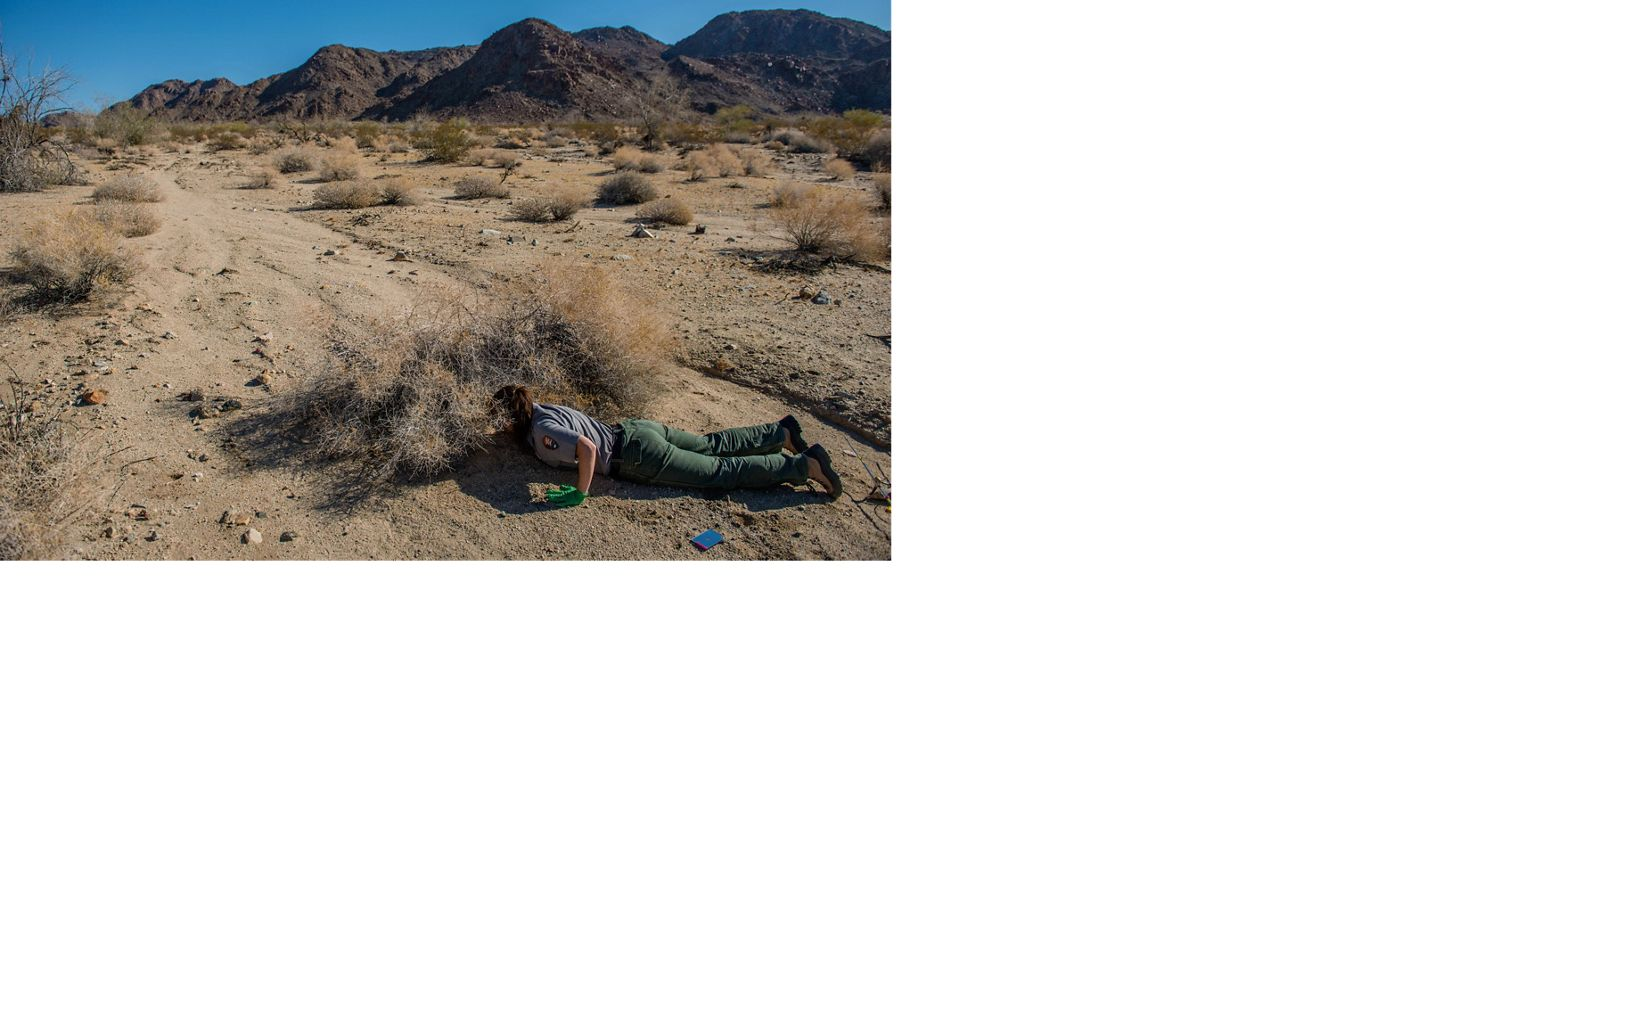 Kristen Lalumiere places tracking location transmitters on a desert tortoise in Joshua Tree National Park.